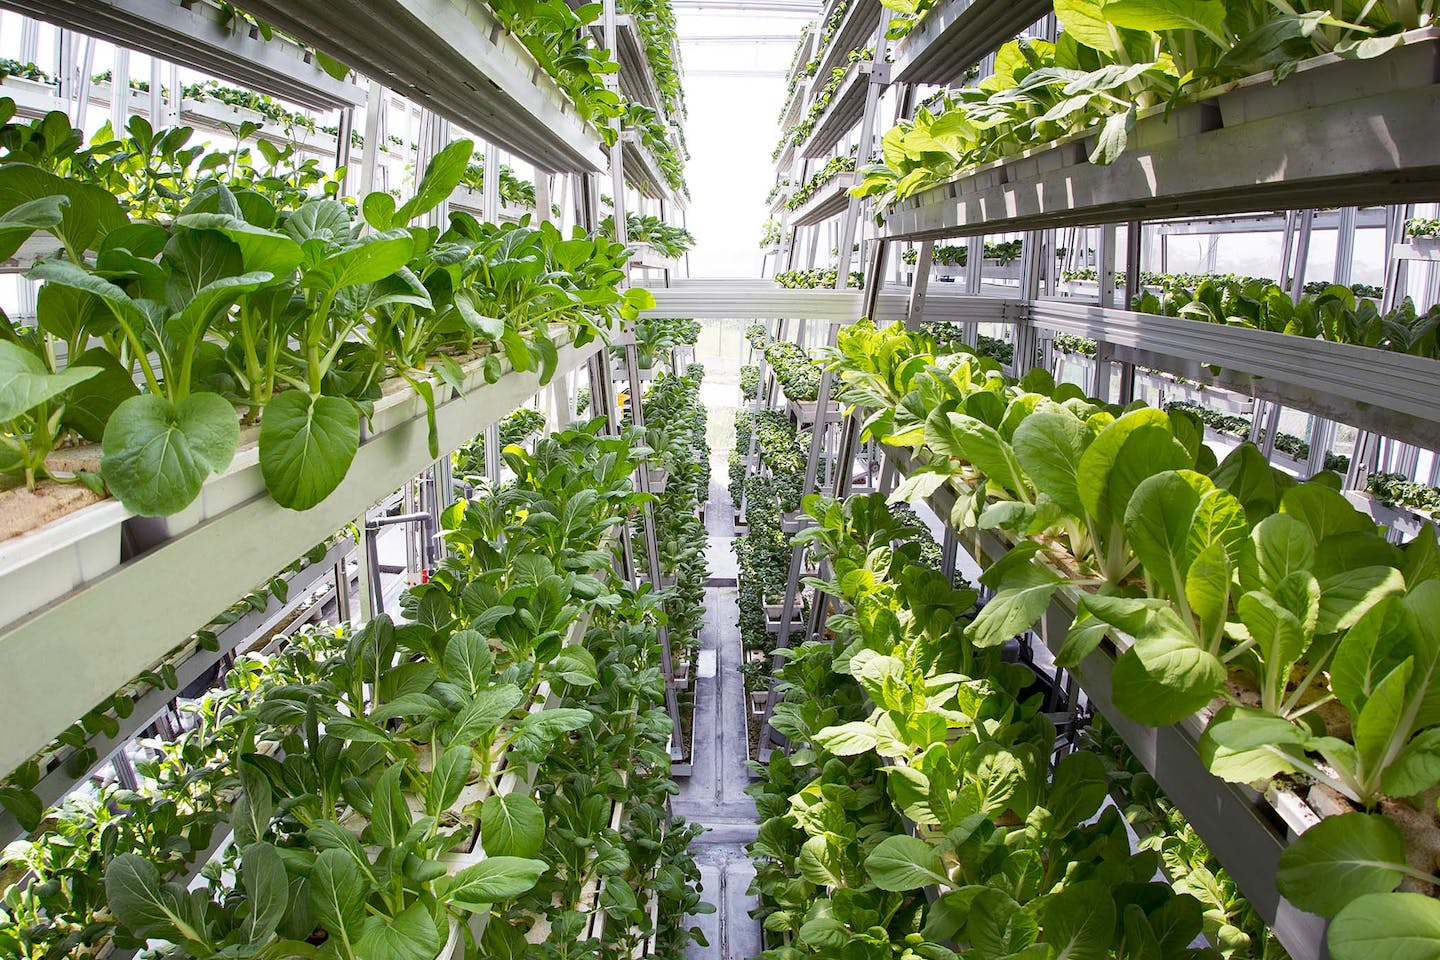 Sky Greens' vertical farming systems in the background. Each vertical tower requires only 40 watts of electricity to operate—the equivalent of one lightbulb. Image: Sky Greens